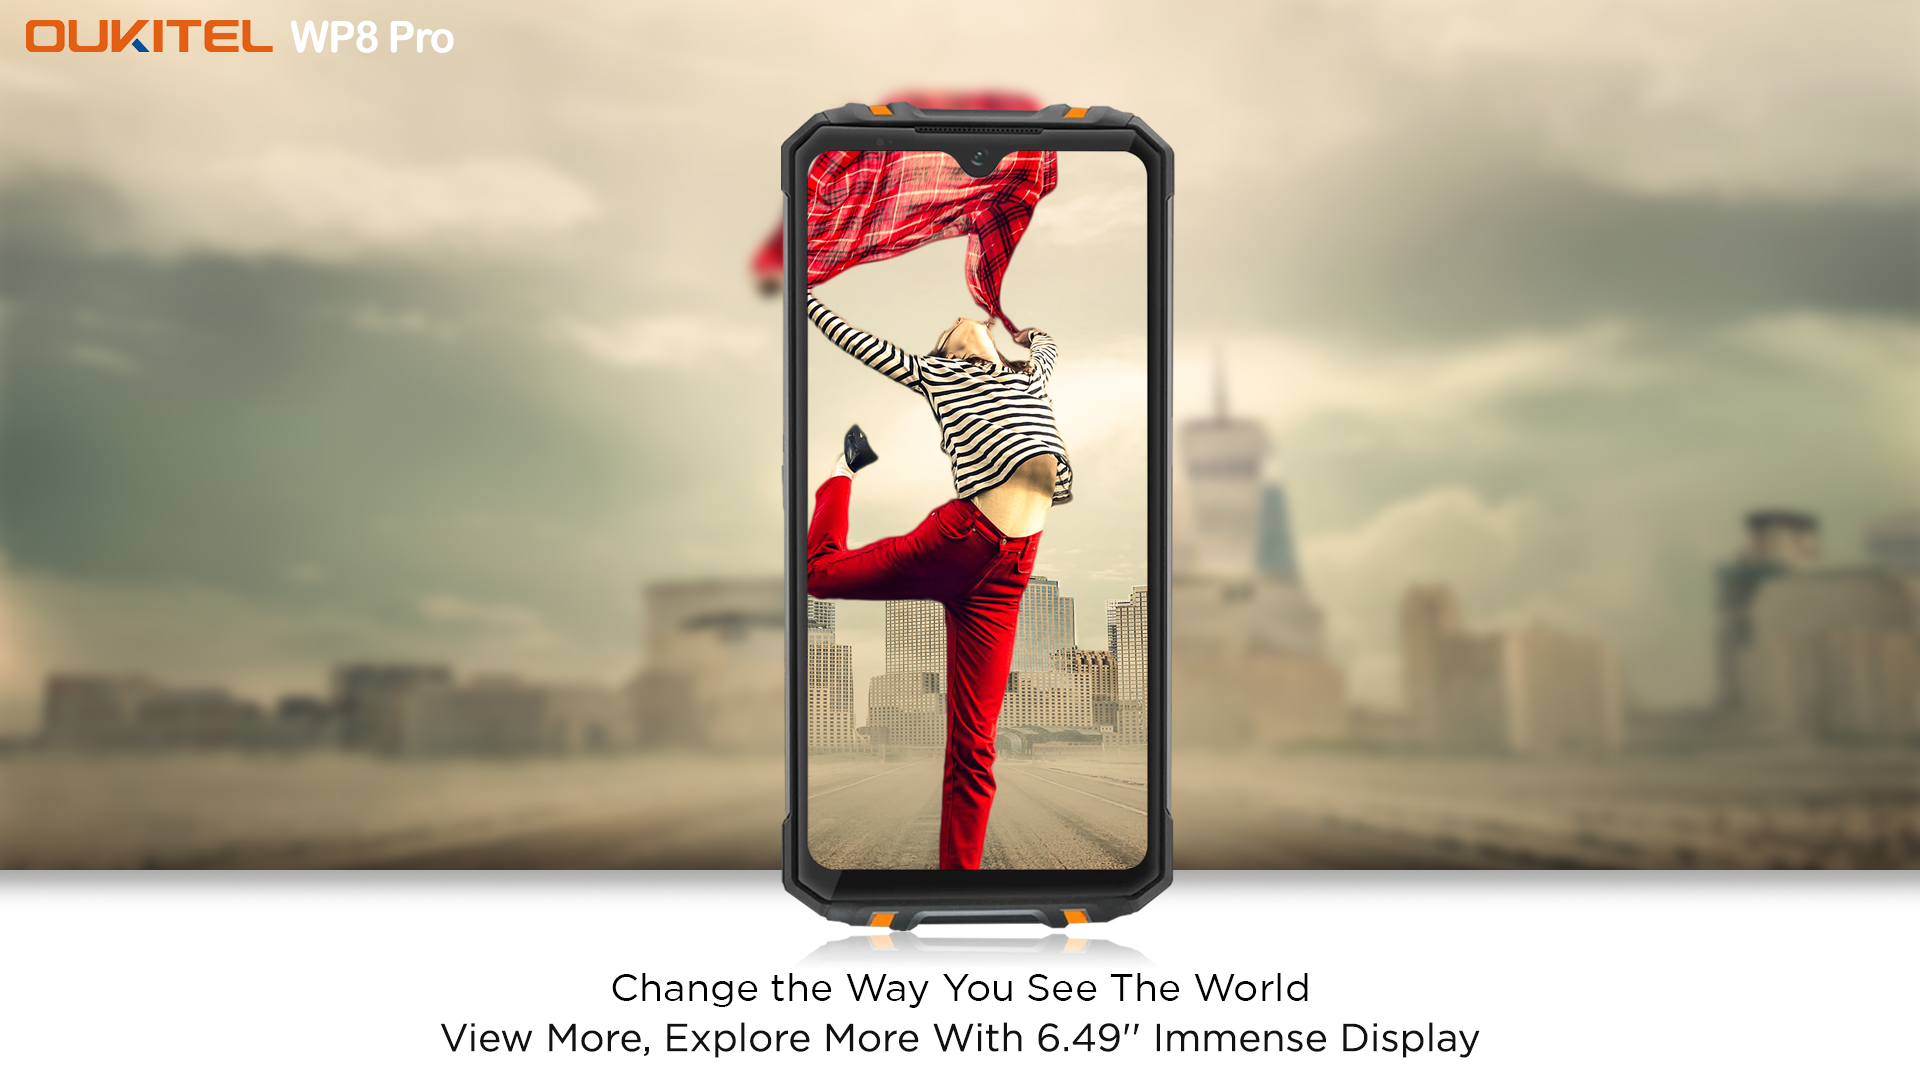 View more, explore more with 6.49inch Immense display of #SportsPhone #OUKITEL #WP8Pro🔥 Just 3 days to go for World Premiere at $119.99 only📣📣